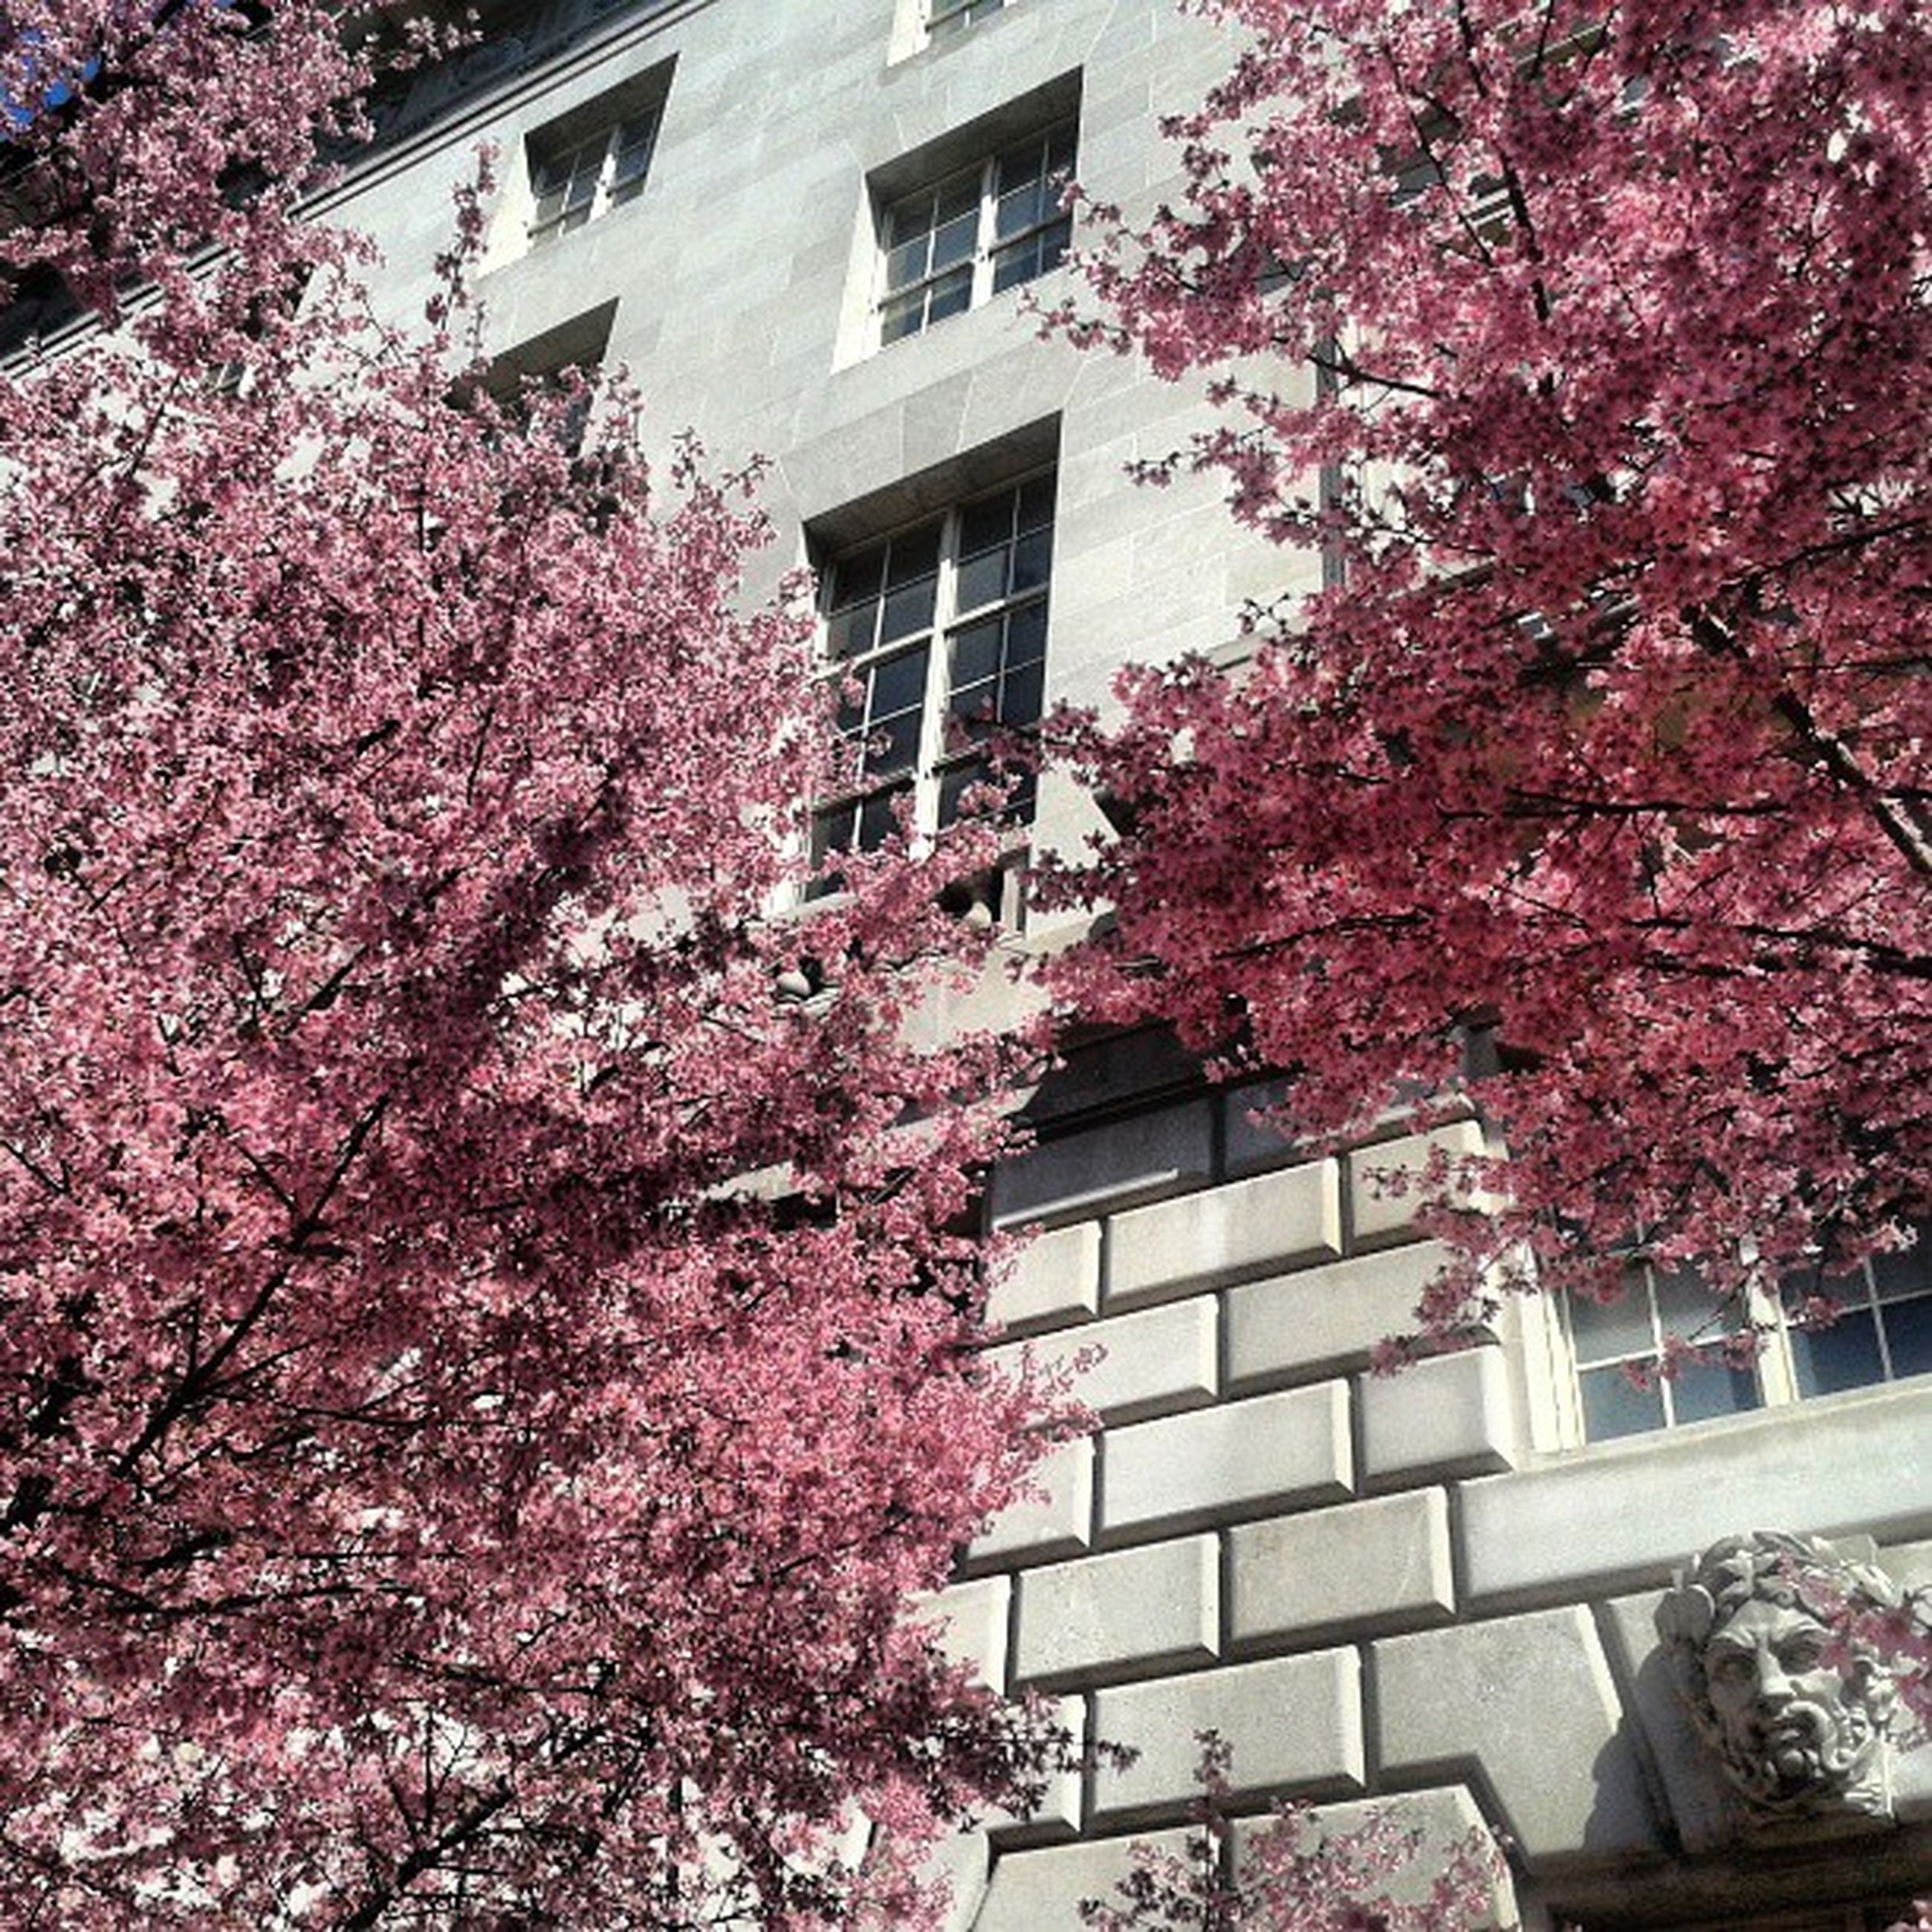 tree, building exterior, architecture, built structure, branch, flower, growth, low angle view, pink color, blossom, nature, residential building, pink, window, city, beauty in nature, day, house, residential structure, outdoors